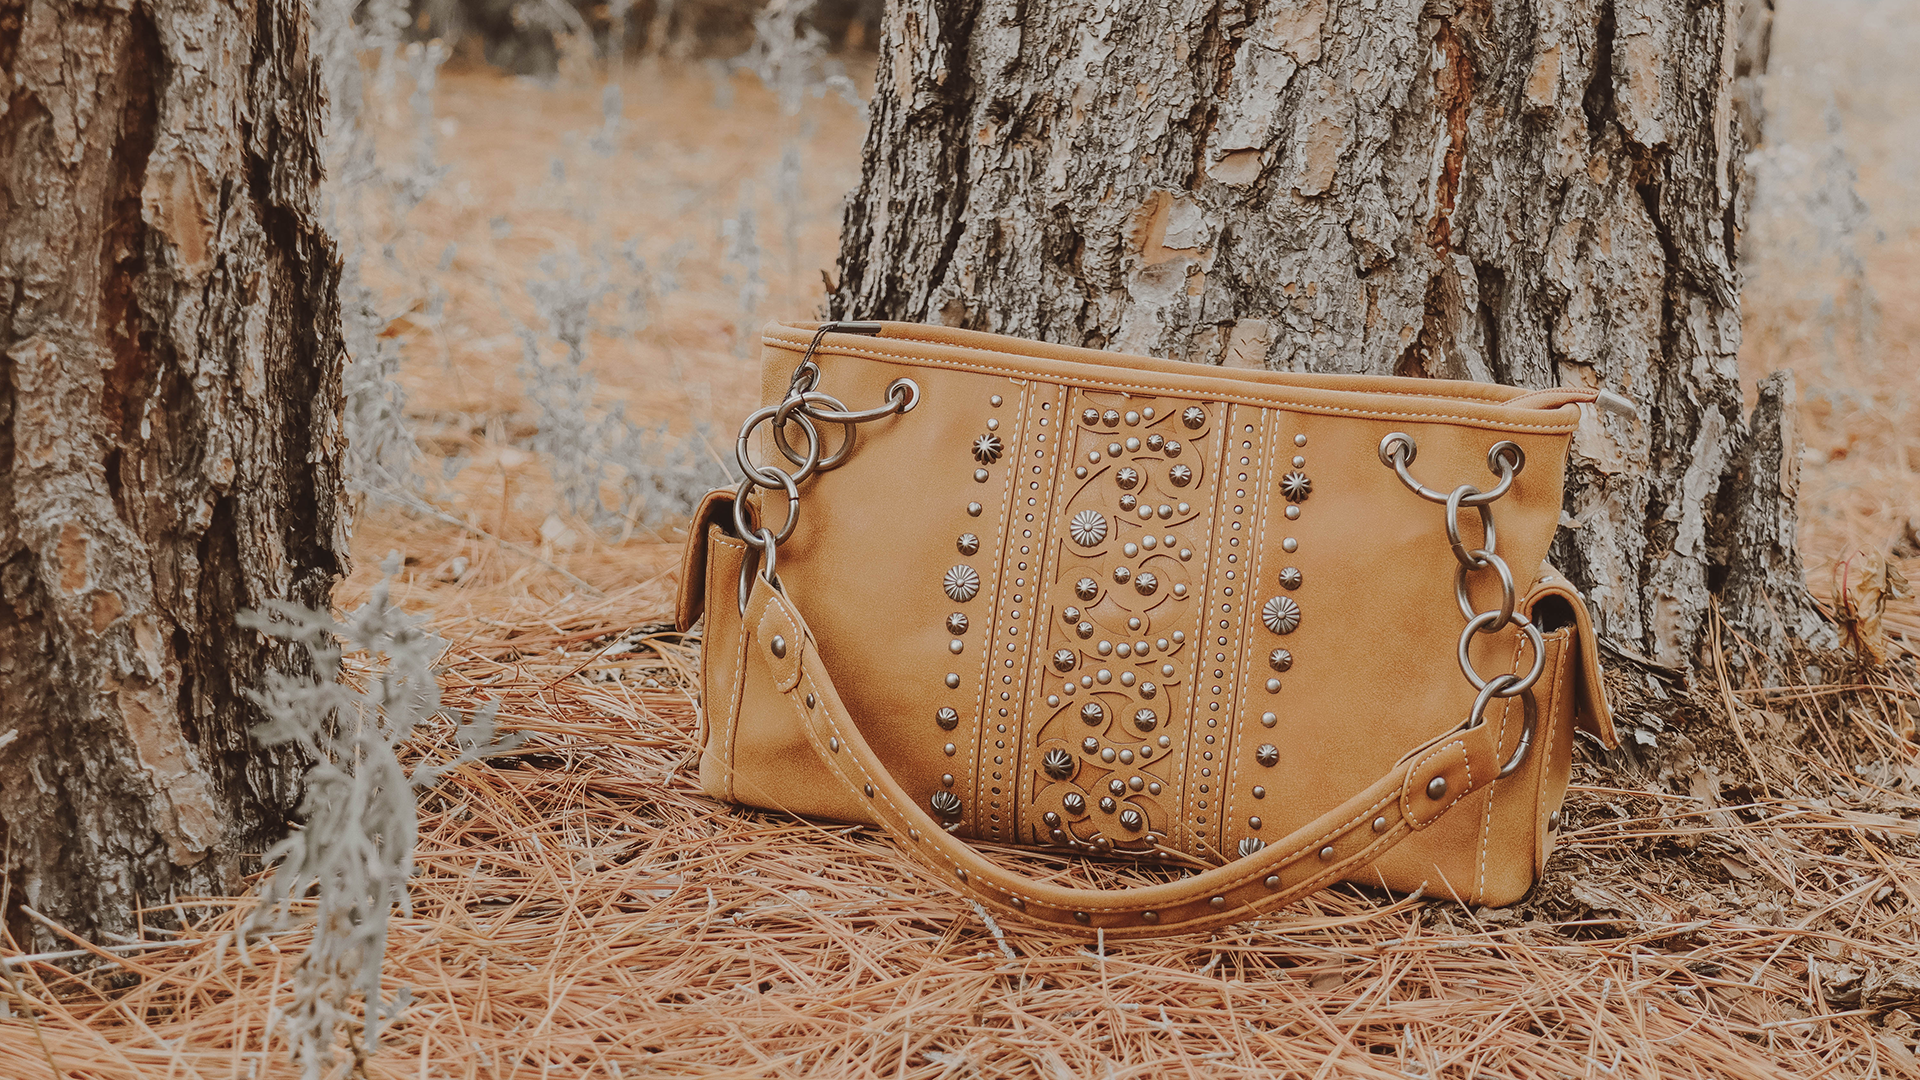 Details about  /Concealed Carry CCW Gun Montana West USA American Bling Dual Sided Brown Purse